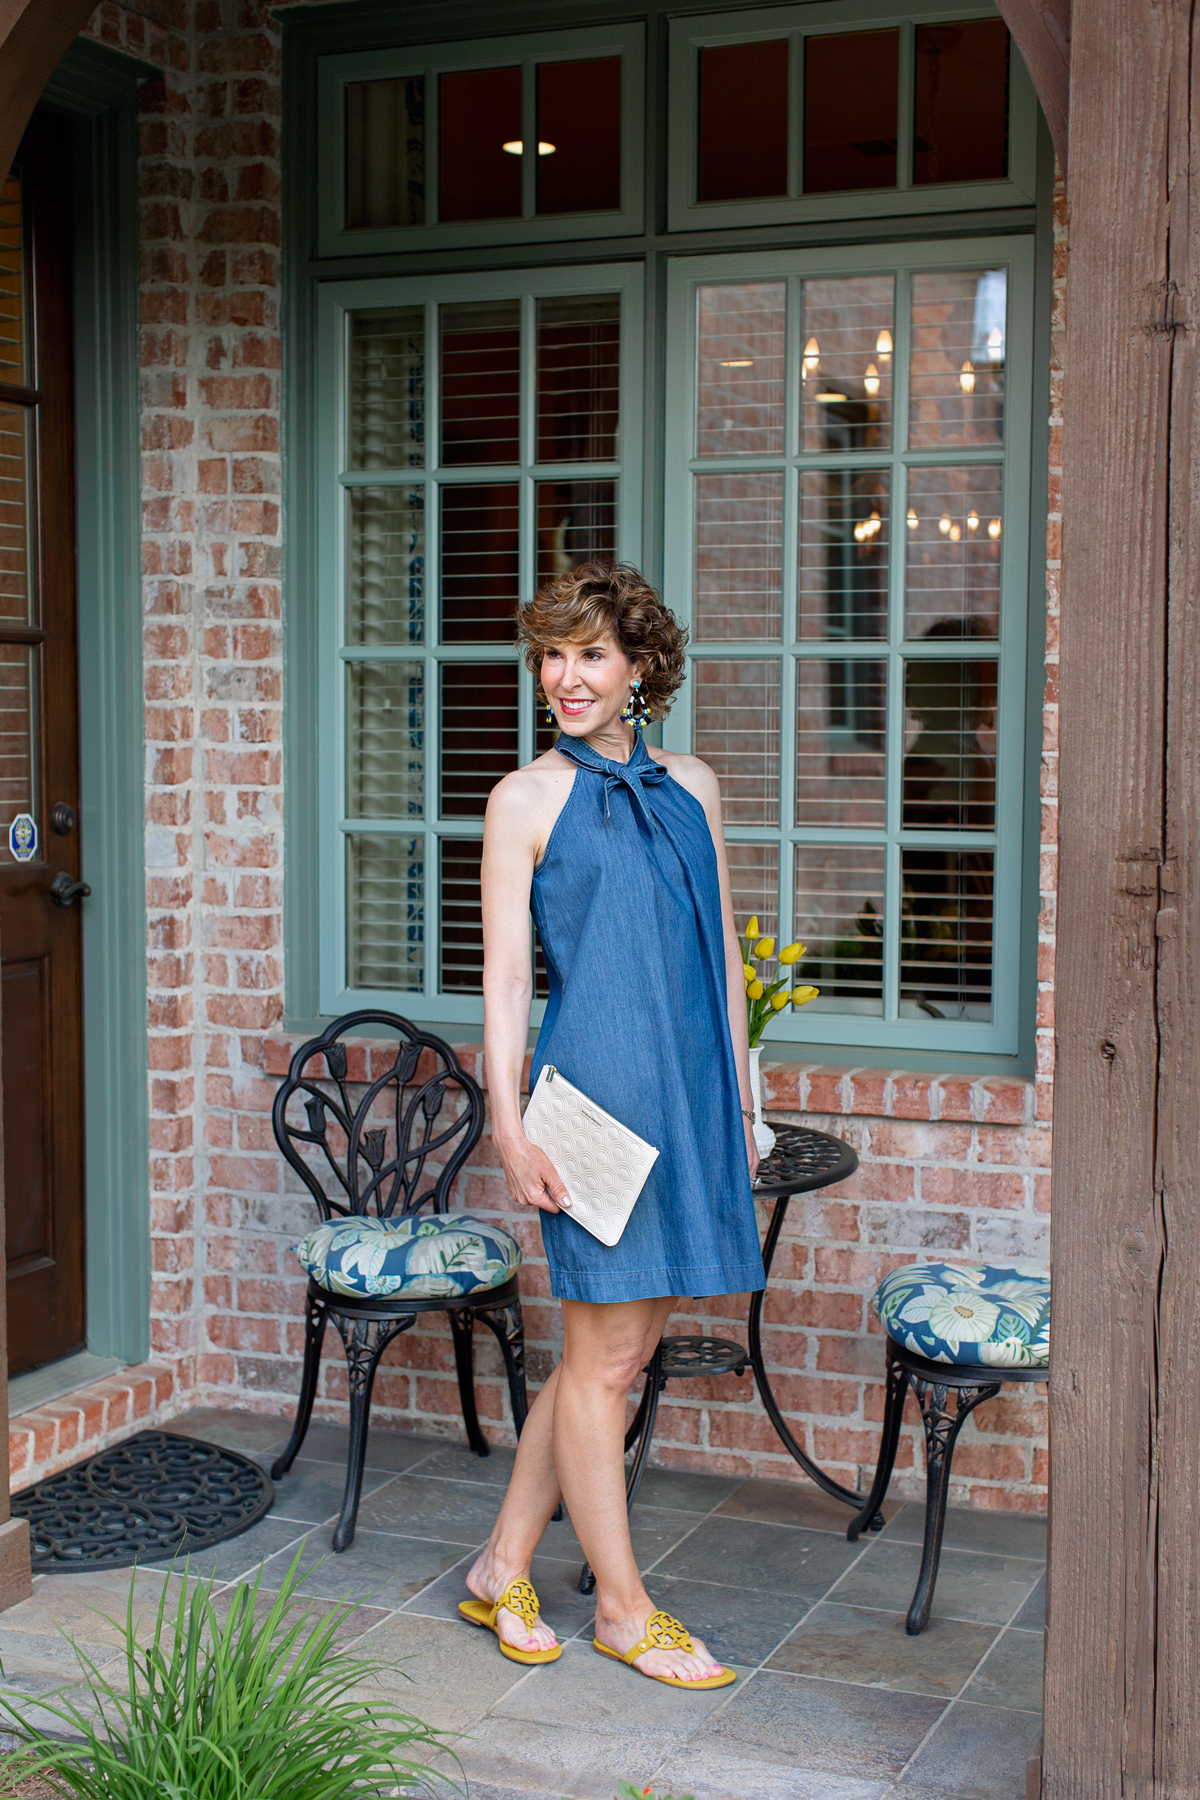 Cece halter neck cotton dress, clean up, clean out, declutter, downsize, downsizing, organize, get organized, how to declutter, tips for decluttering, tips for getting organized, how to get organized, how to downsize, tips for downsizing, professional organizer, cut the clutter, cut clutter, how to simplify, tips to simplify, give away stuff, empty nest, empty nester, empty nesters, moving, throwing out things, empty nester moving, empty nest downsize, empty nest downsizing, empty nester downsizing